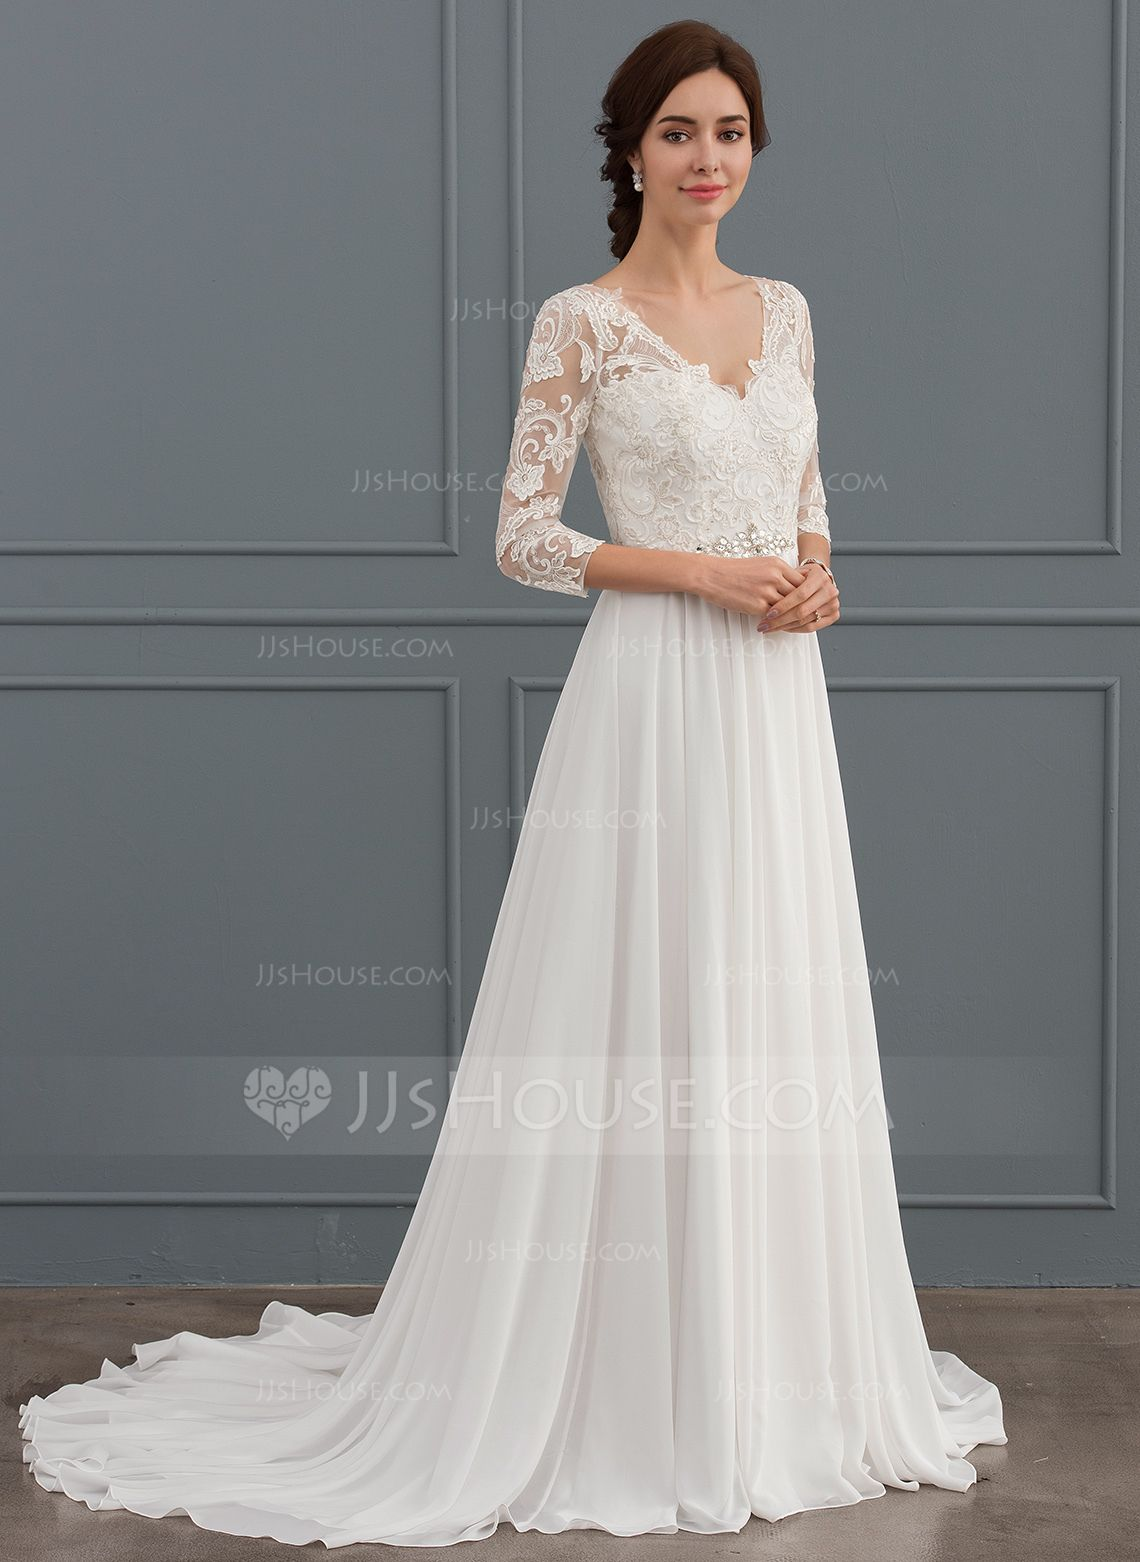 Us 181 00 A Line Princess V Neck Sweep Train Chiffon Lace Wedding Dress With Beading Sequins Jj S House Wedding Dress Long Sleeve Wedding Dress Sleeves Ball Gowns Wedding [ 1562 x 1140 Pixel ]